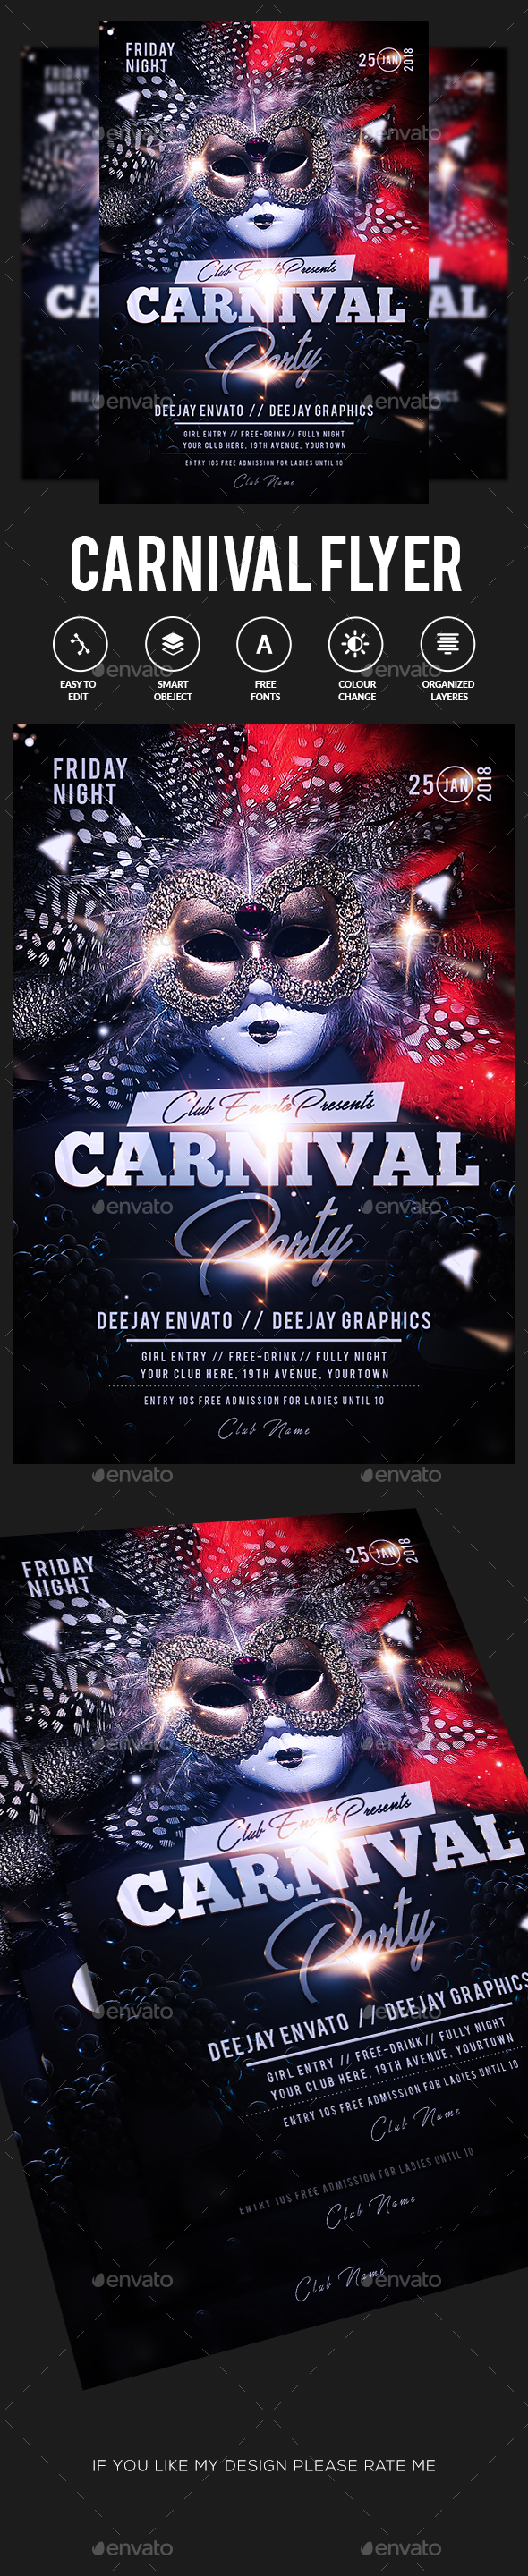 GraphicRiver Carnival Flyer 21193981